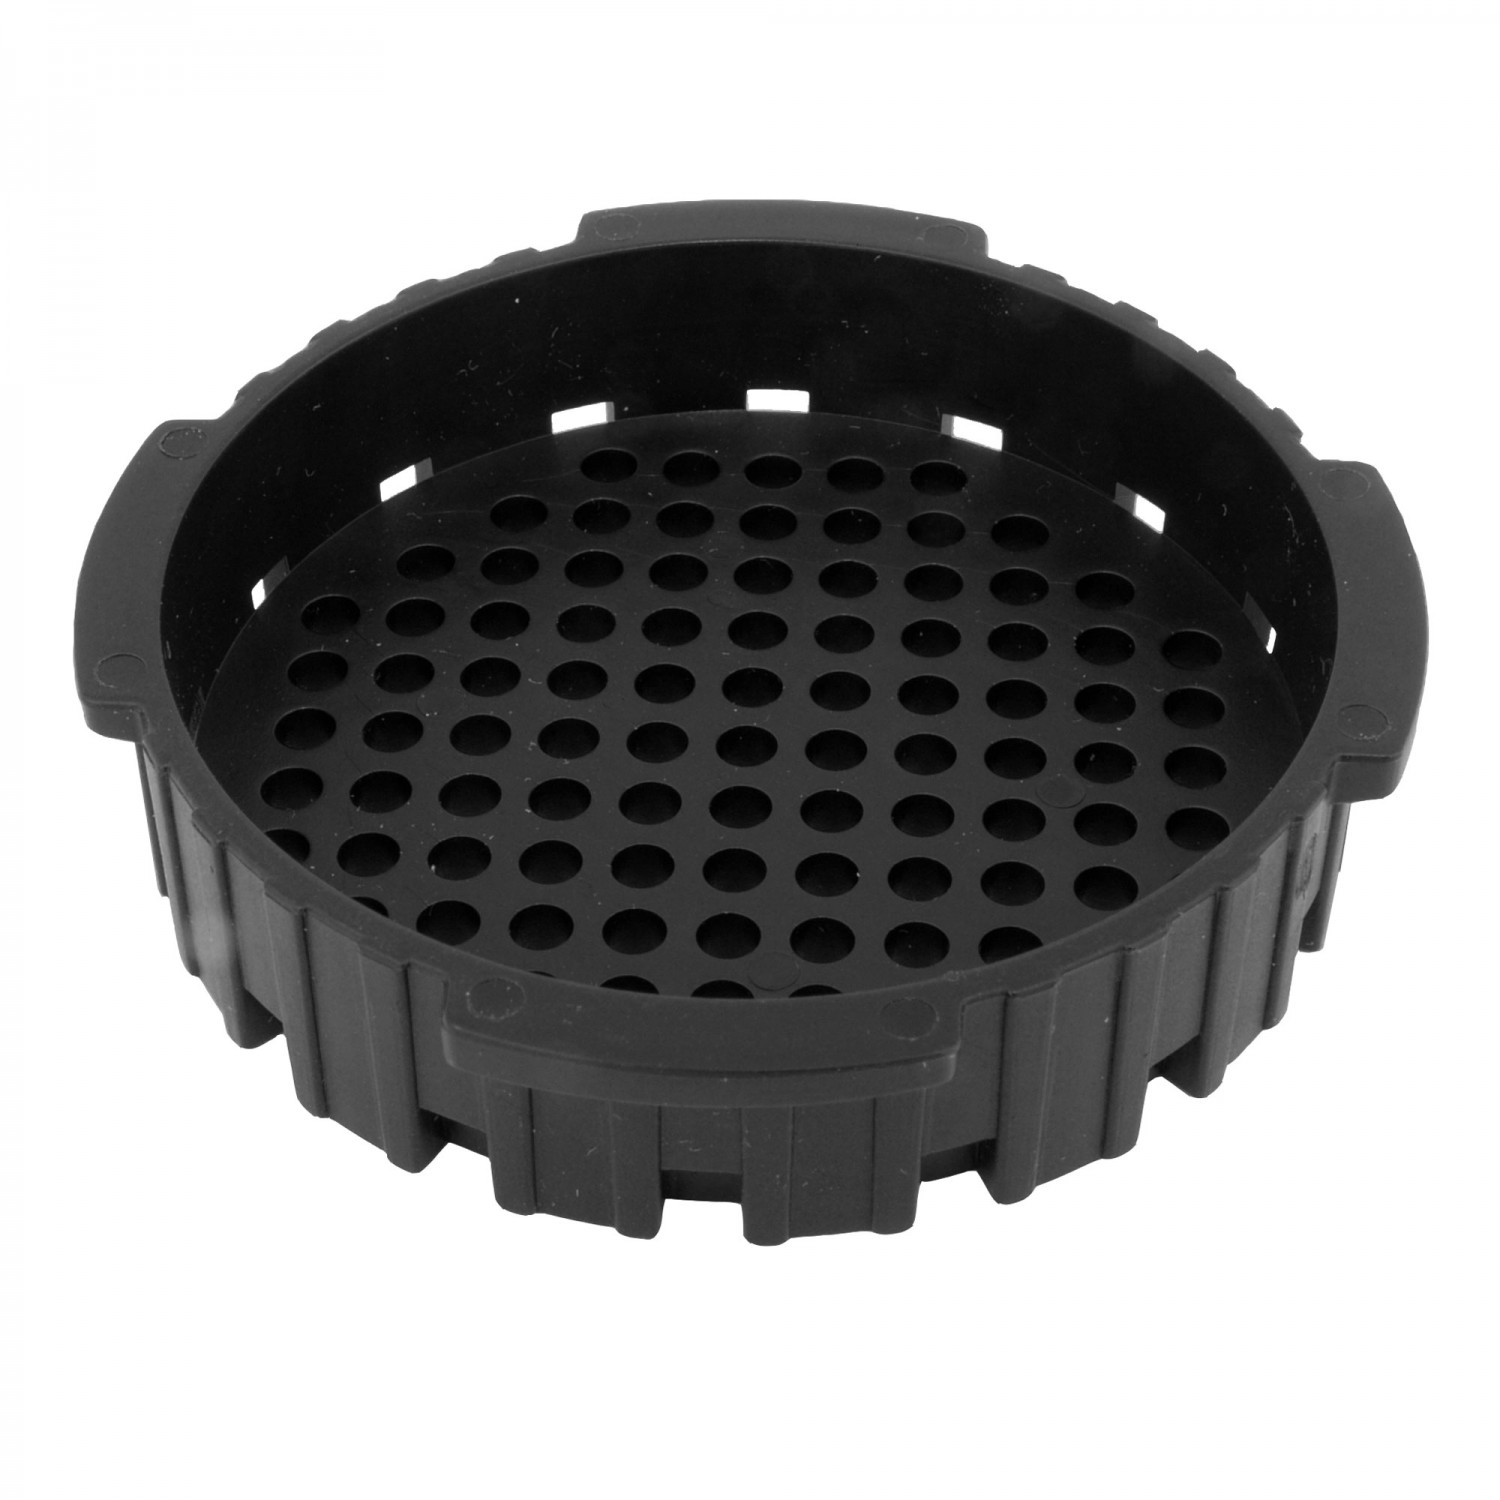 AeroPress replacement Filter Basket